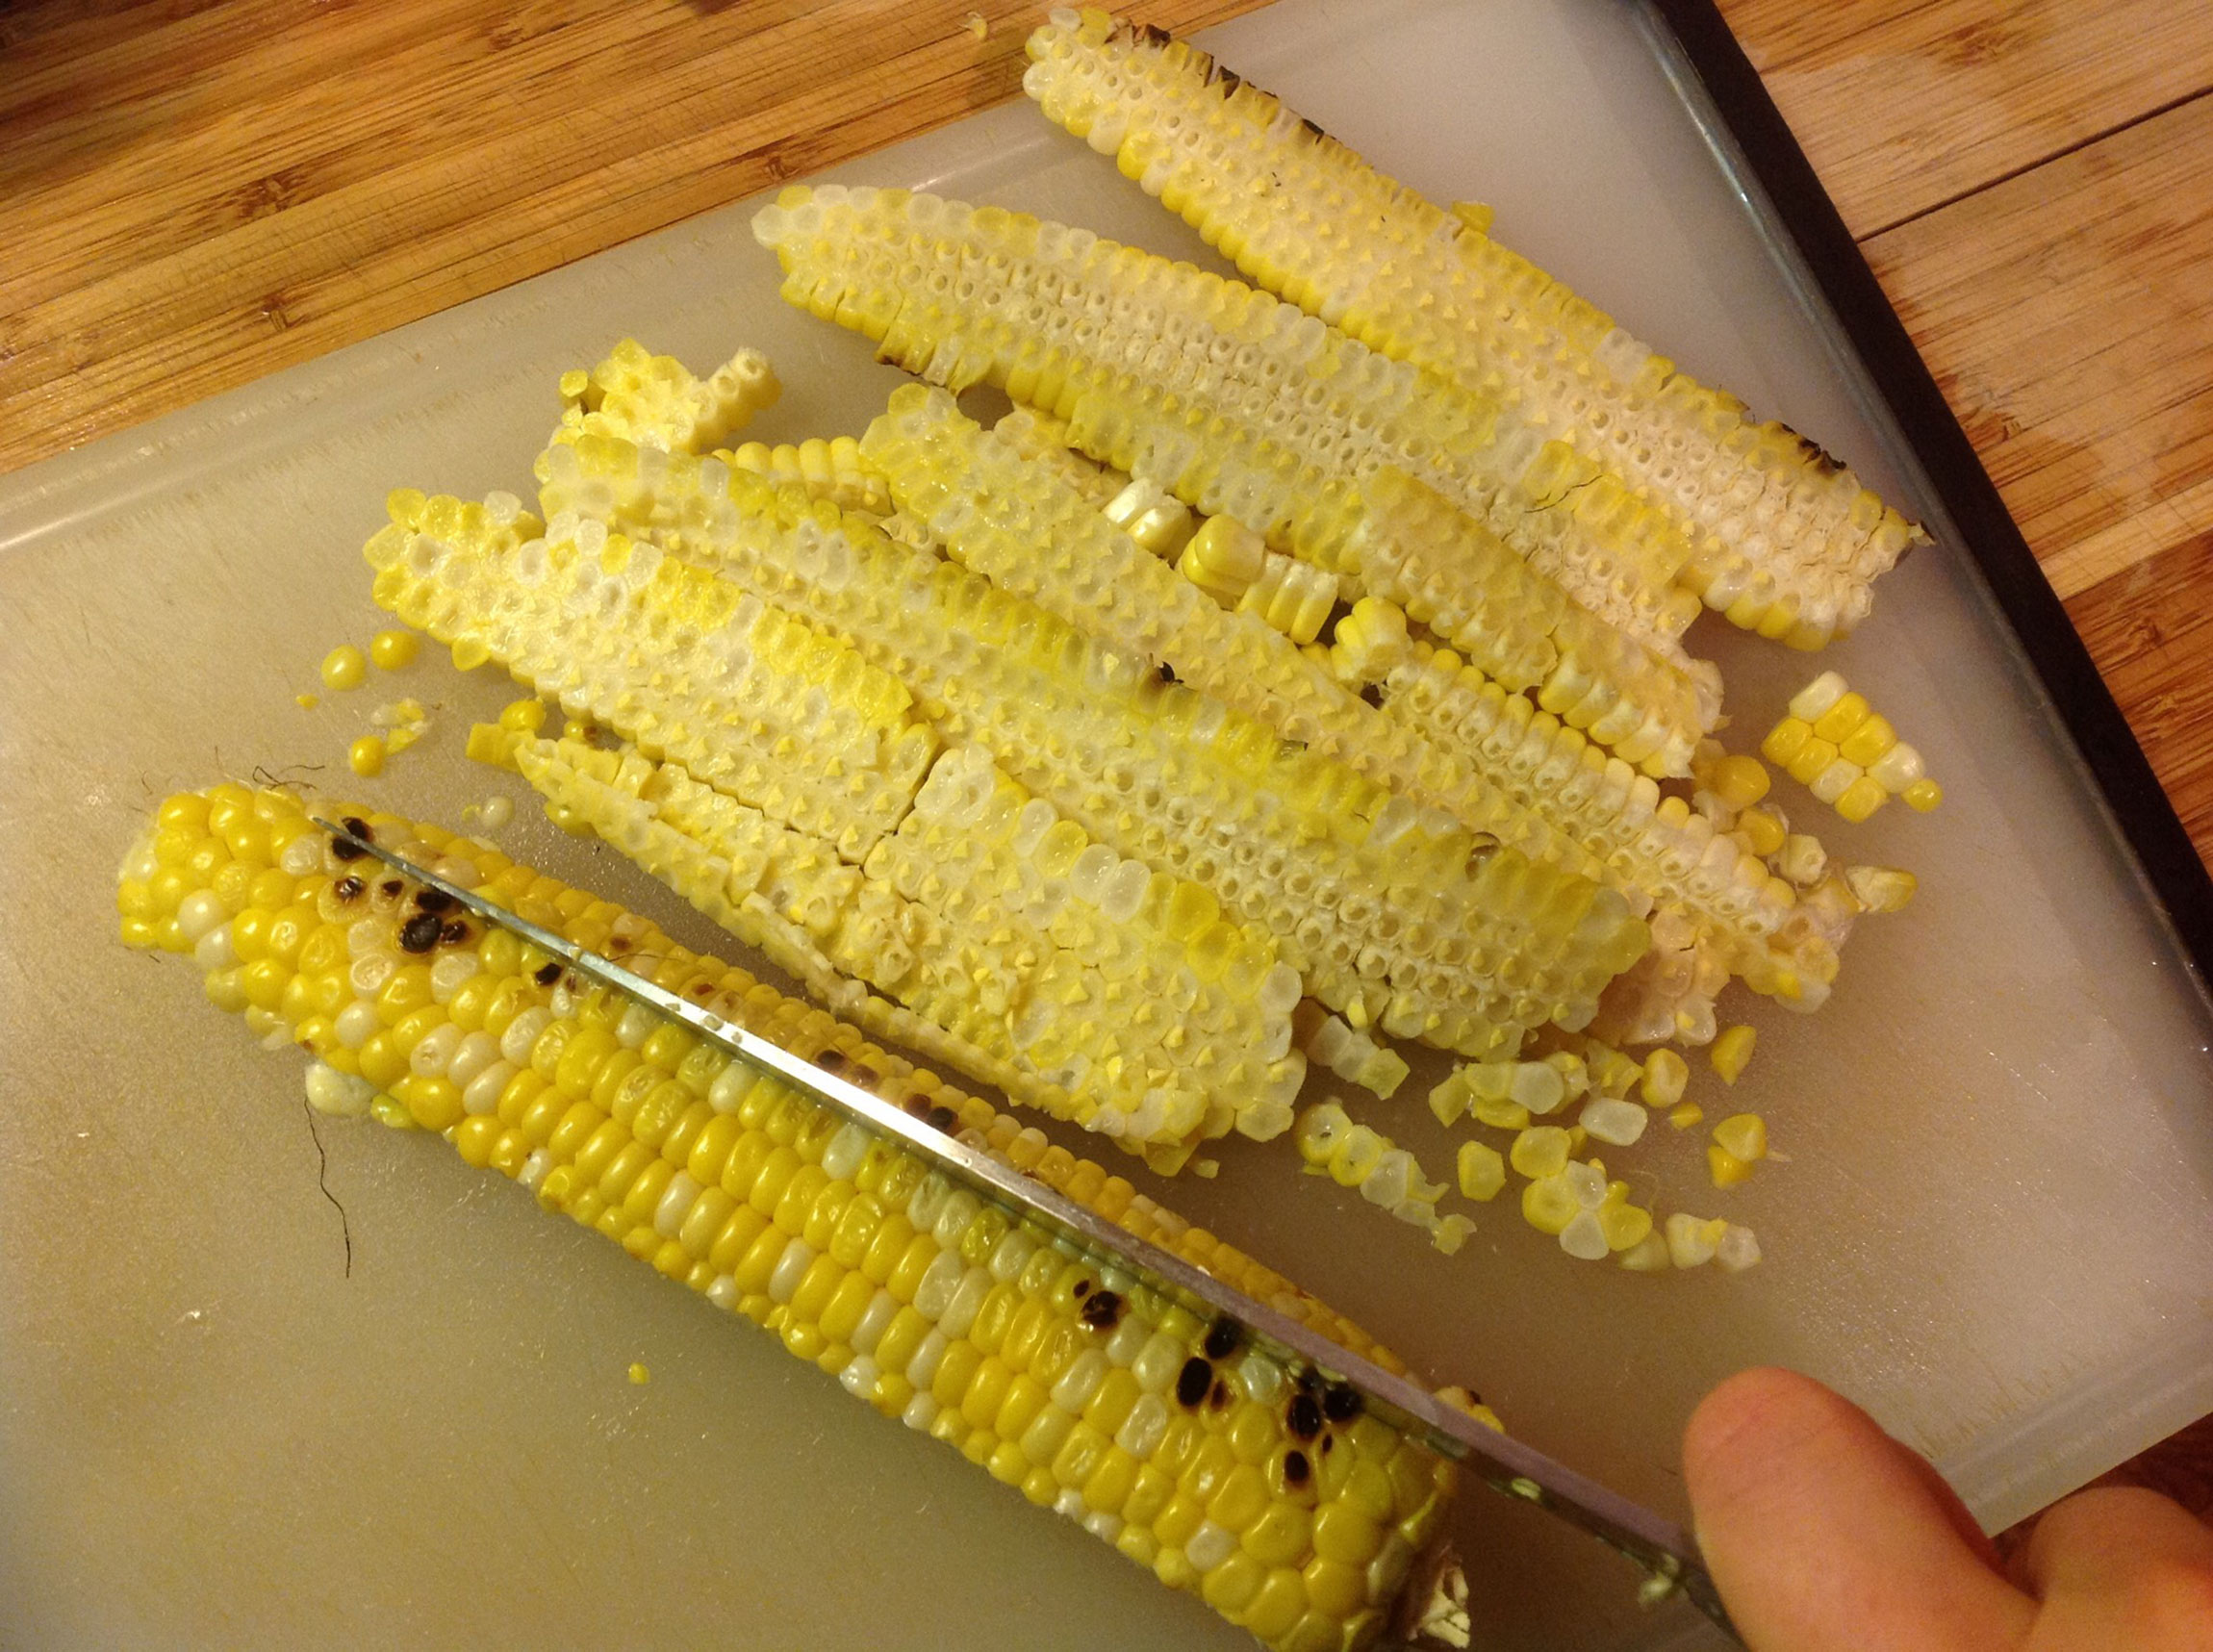 grilled corn being cut on cutting board